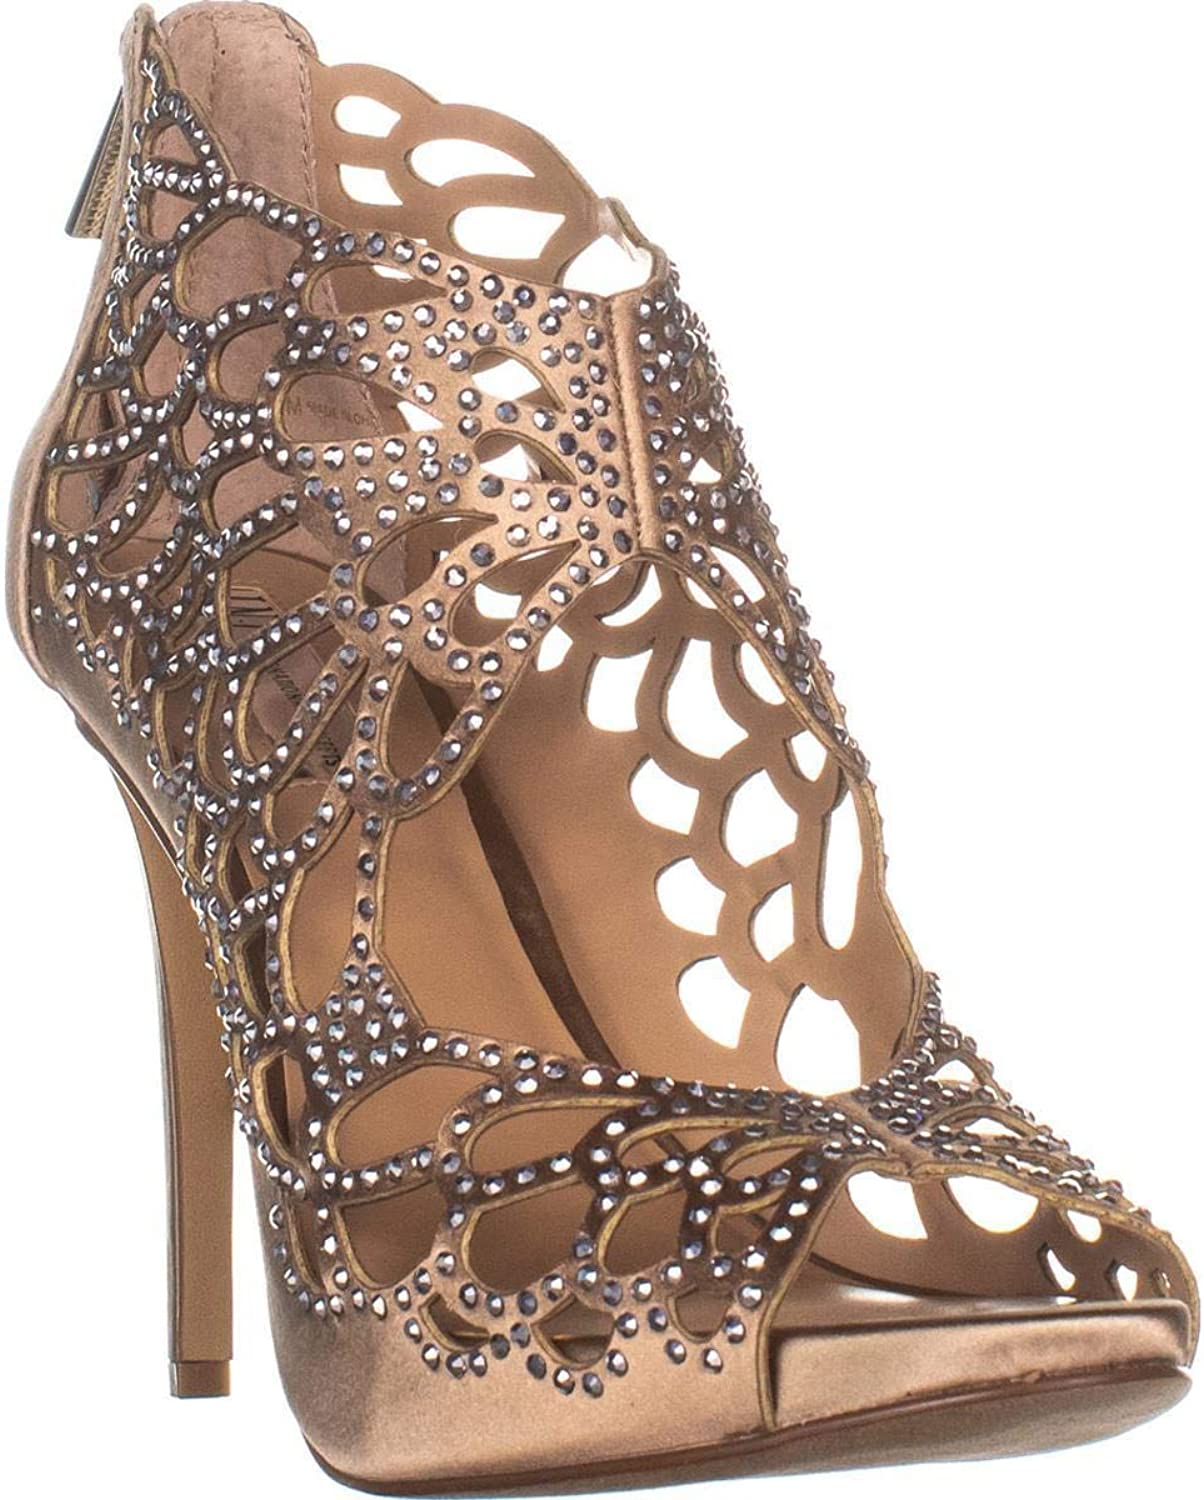 INC International Concepts Womens SARANE Fabric Open Toe Formal Strappy Sandals